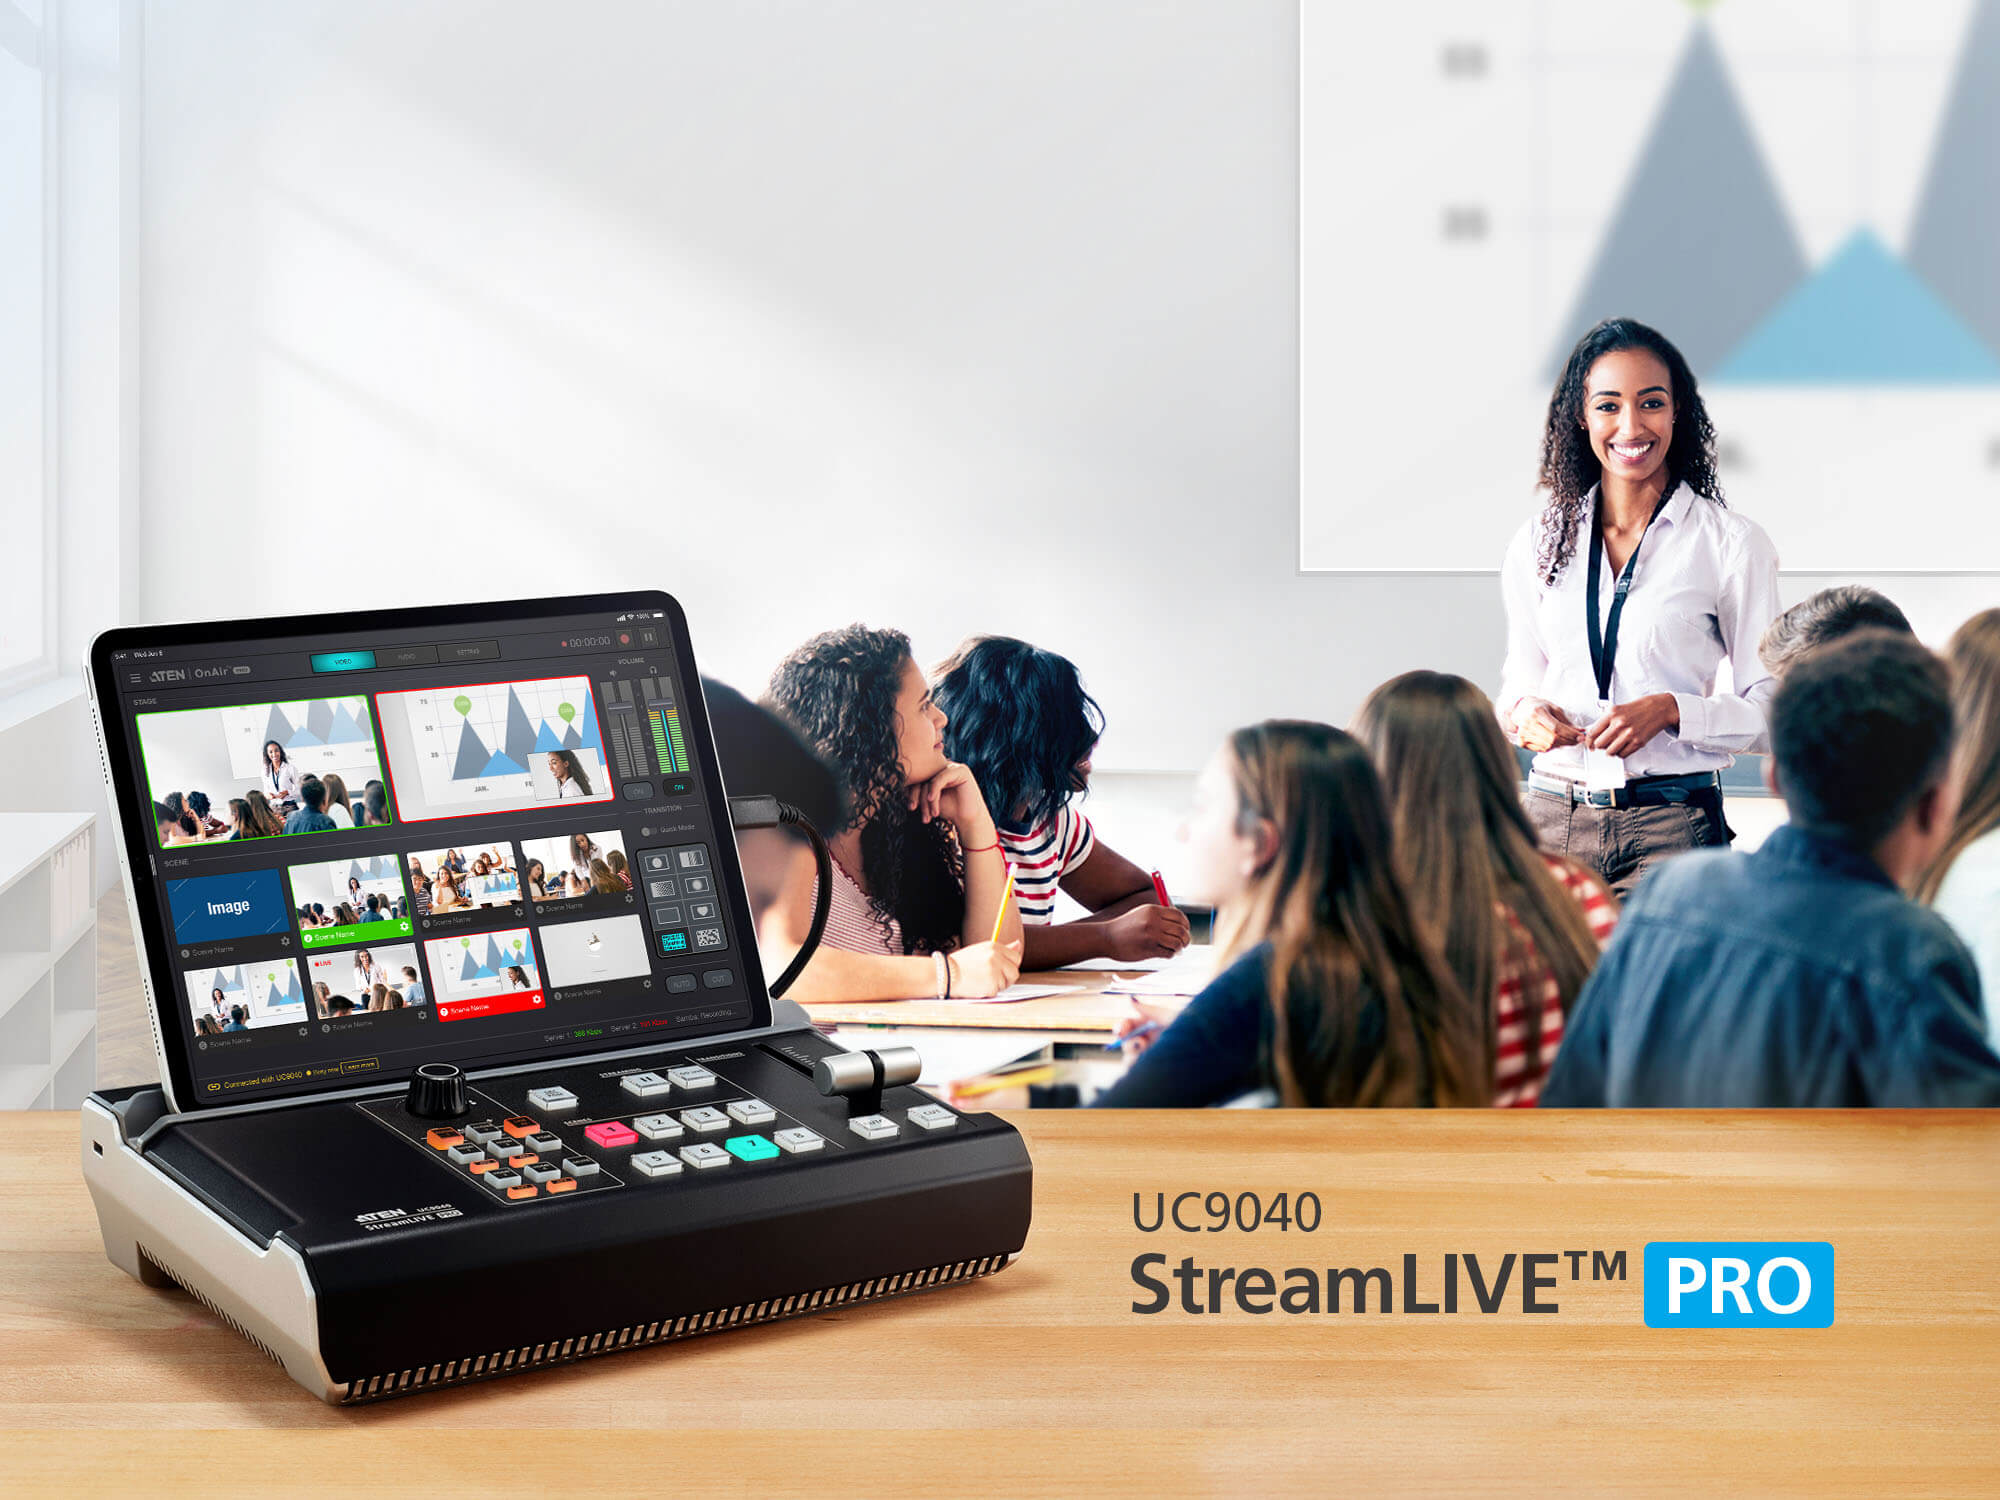 StreamLIVE PRO - Mezclador AV StreamLIVE™ HD con streaming-4